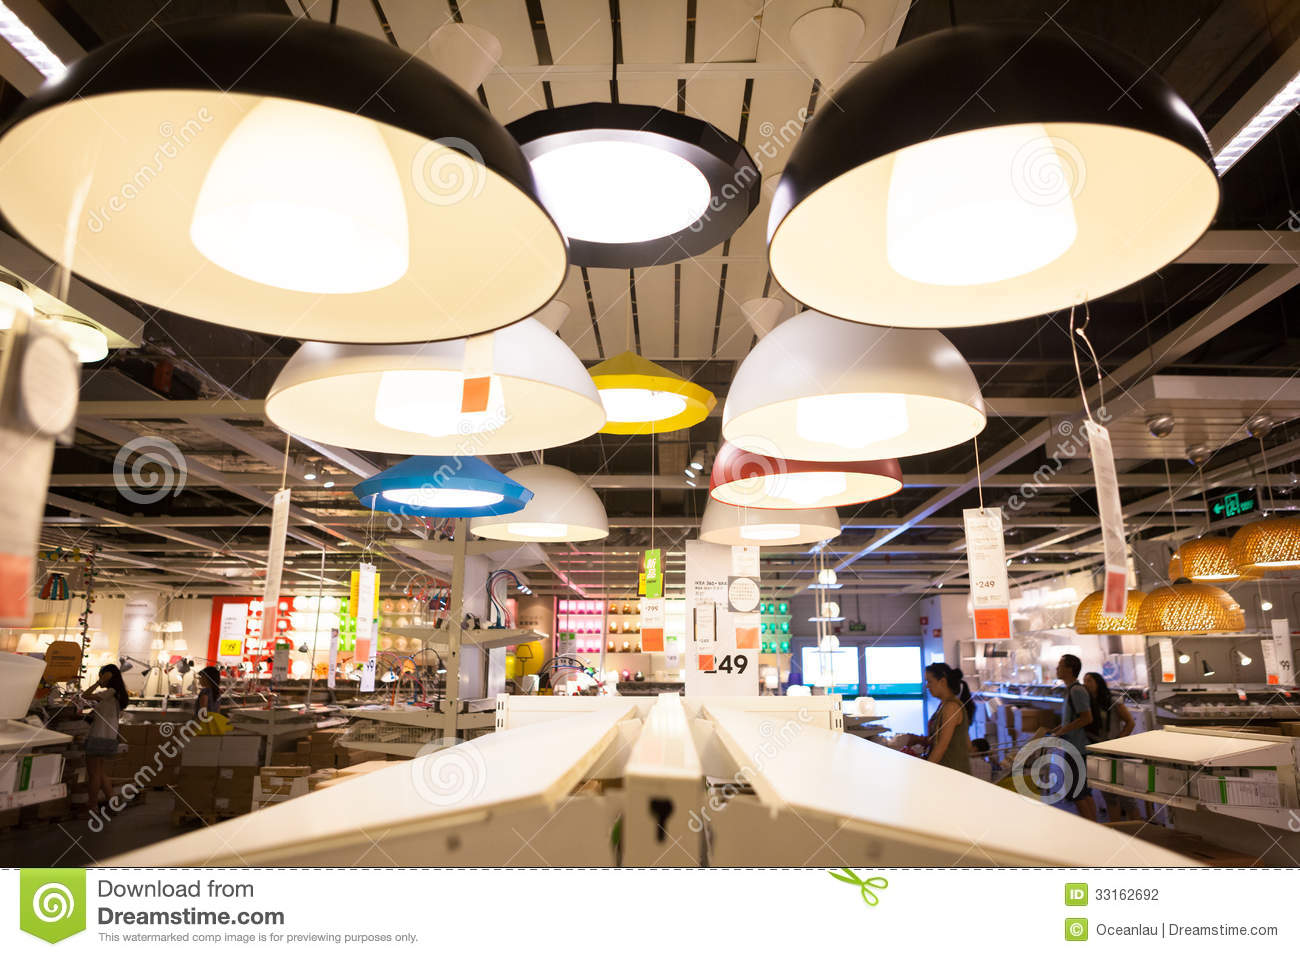 Ikea Store In Chengdu Lamps Editorial Photography Image Of Home Table 33162692